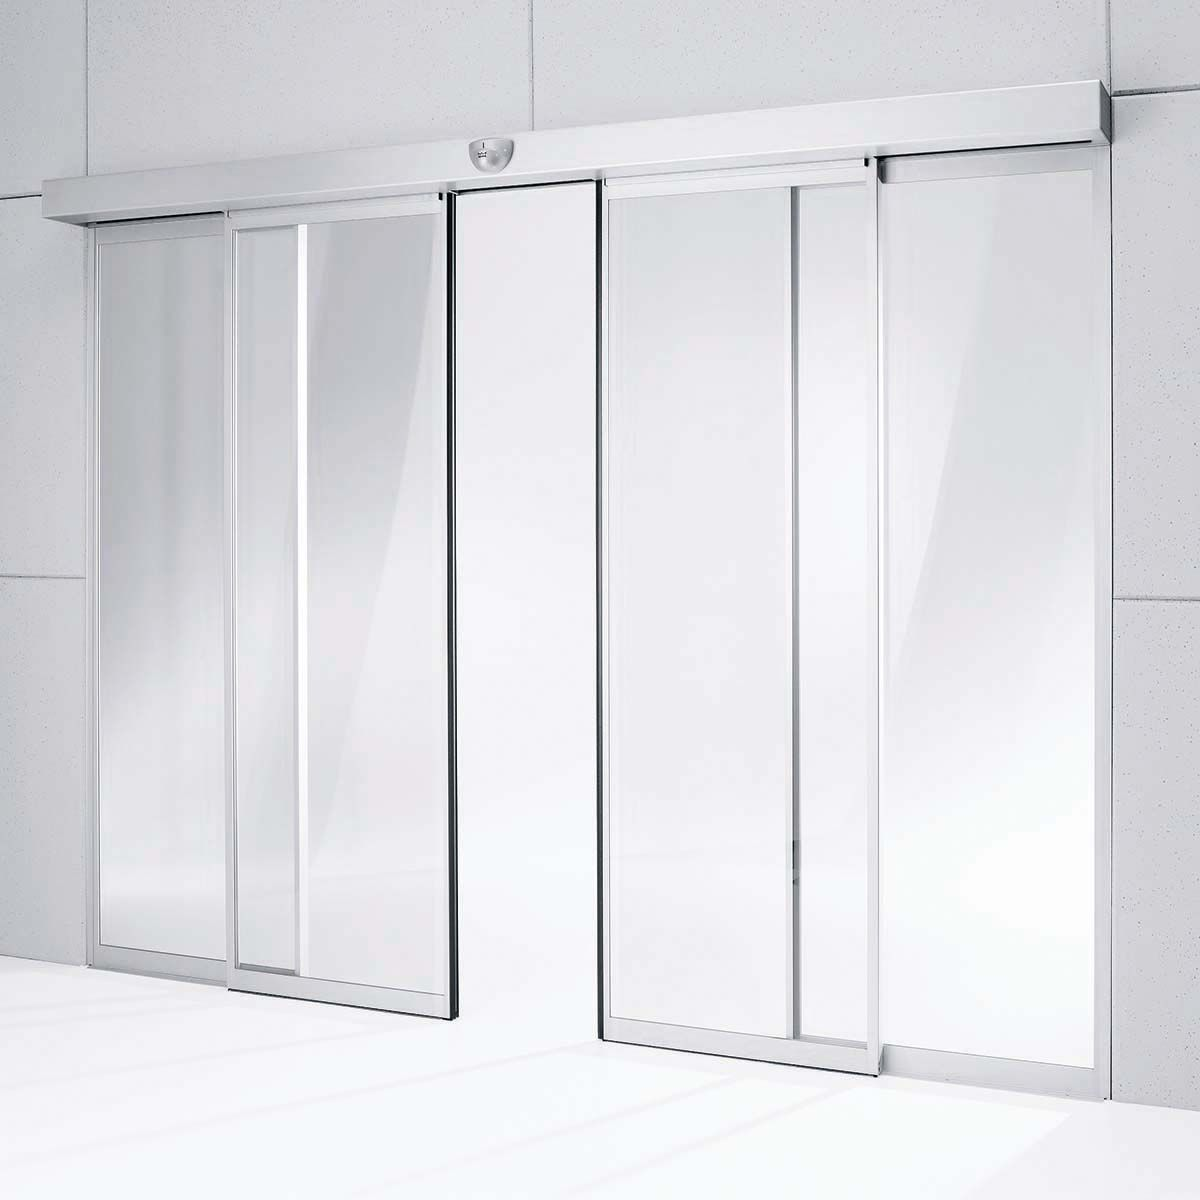 Sliding Easy Sliding Doors Sliding Glass Door Repair And Automatic